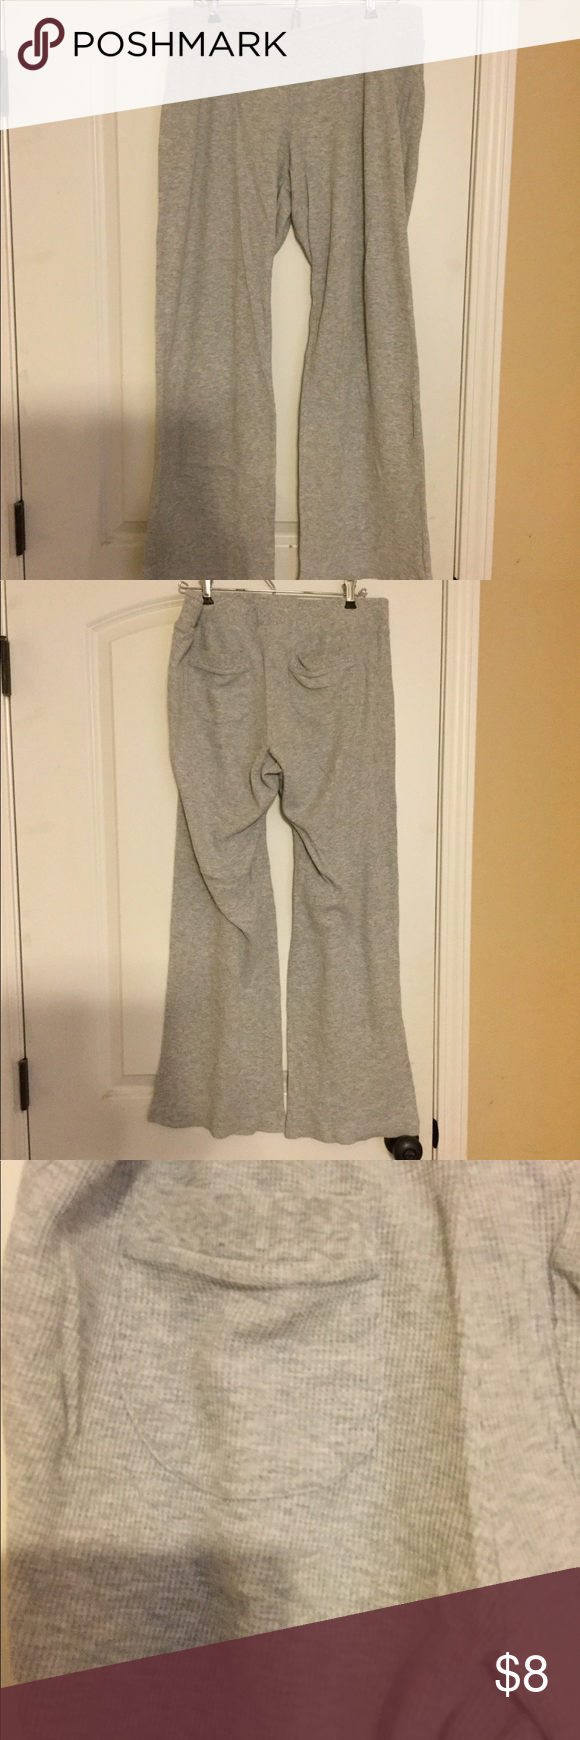 9613b6e0b7b93 EUC Maternity Lounge Pants Super comfortable, light gray, thermal-feel maternity  lounge pants. Under-belly waistband. Two rear pockets. Liz Lange for Target  ...